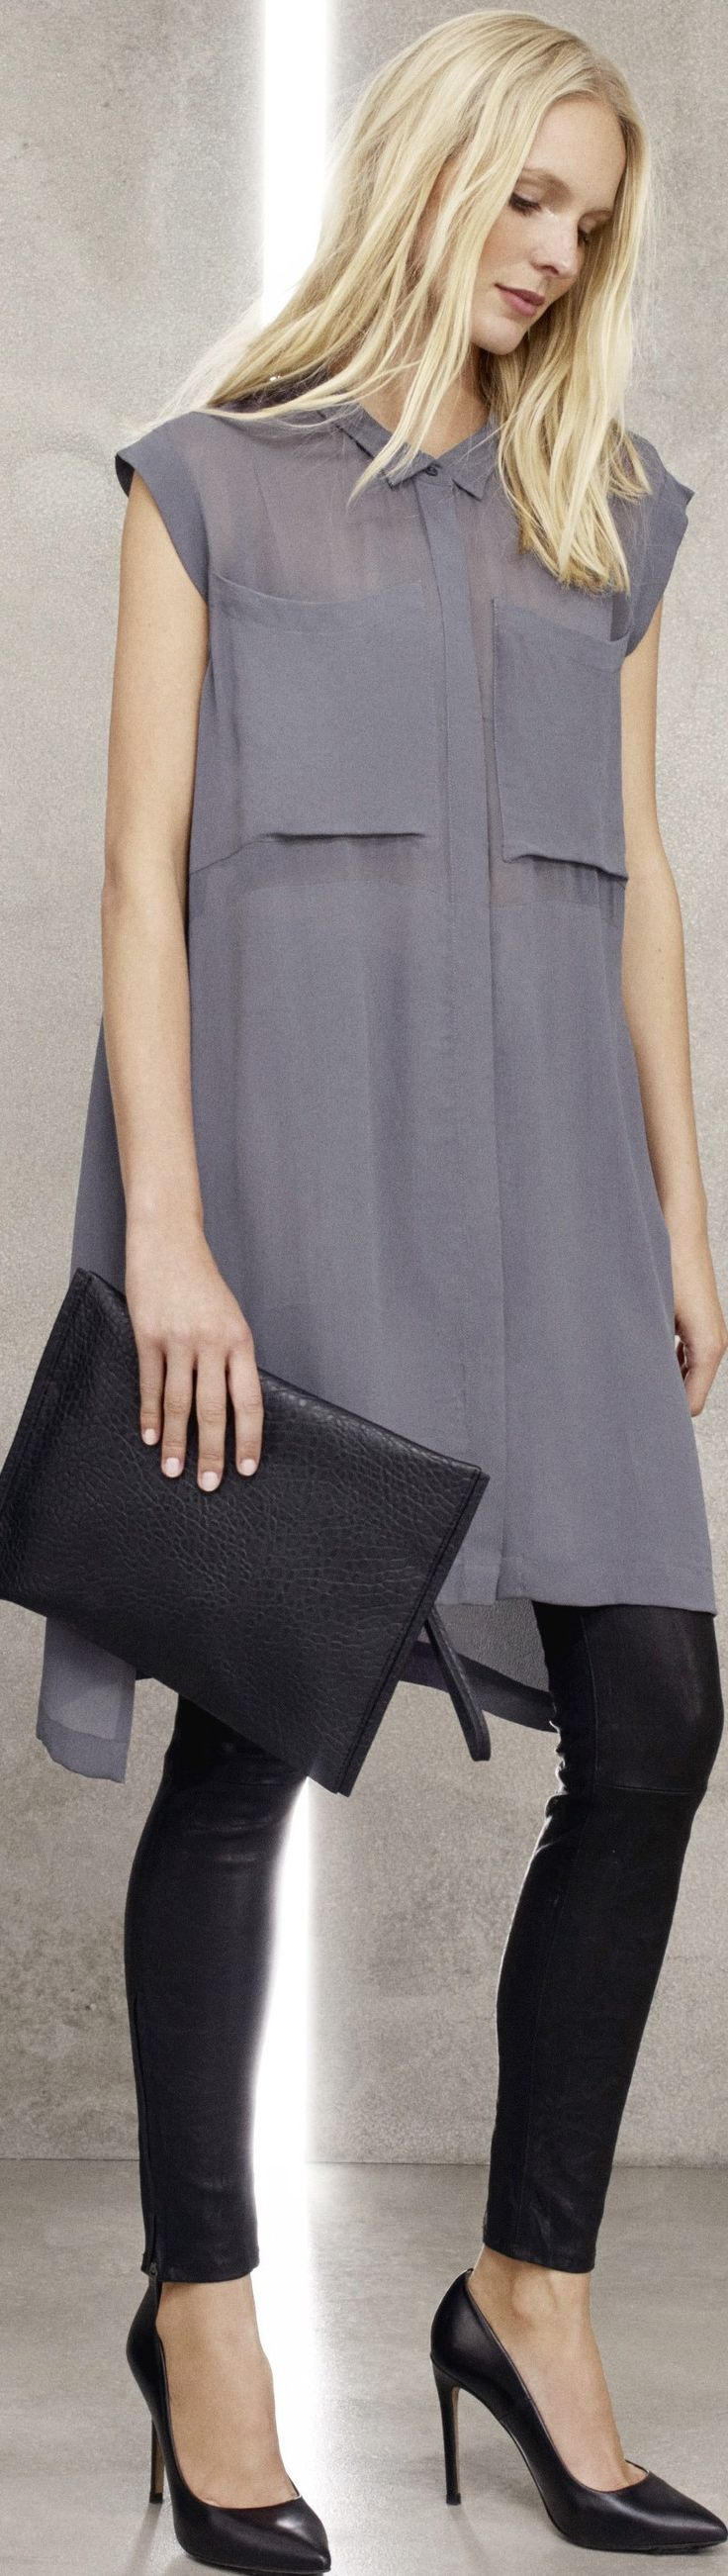 Latest Fashion Trend - Grey Outfit for women -  tunic top & leggings - Tips for Fall & Winter Trend - http://www.boomerinas.com/2014/08/26/%ef%bb%bfgray-outfits-for-women-4-tips-for-wearing-gray-in-fall-winter/